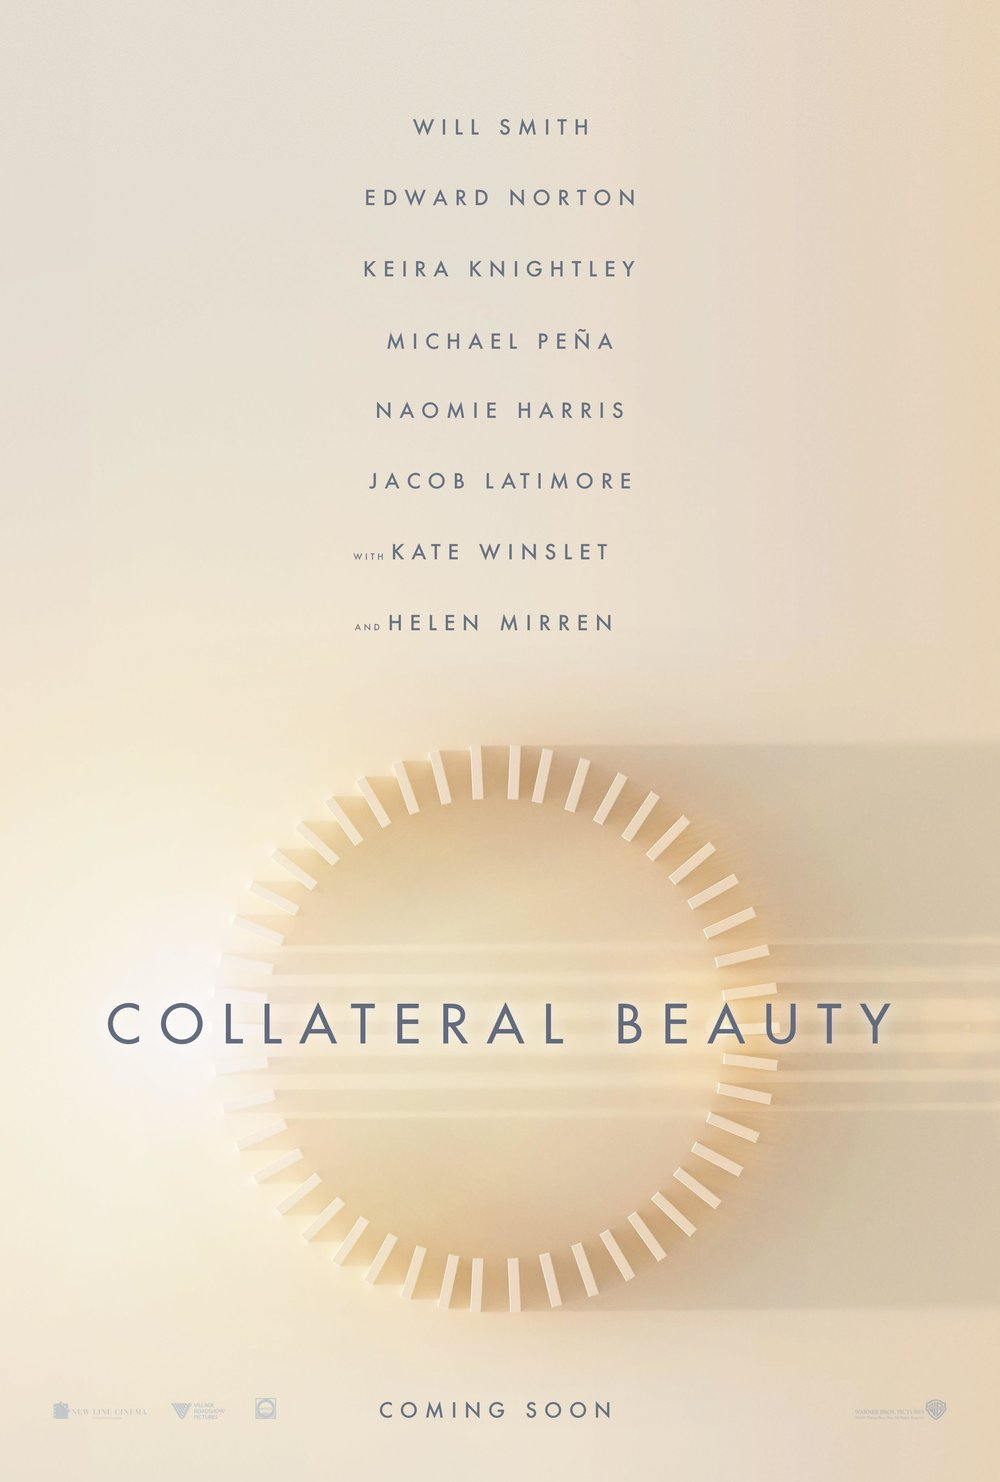 collateral-beauty-movie-2016-poster.jpg